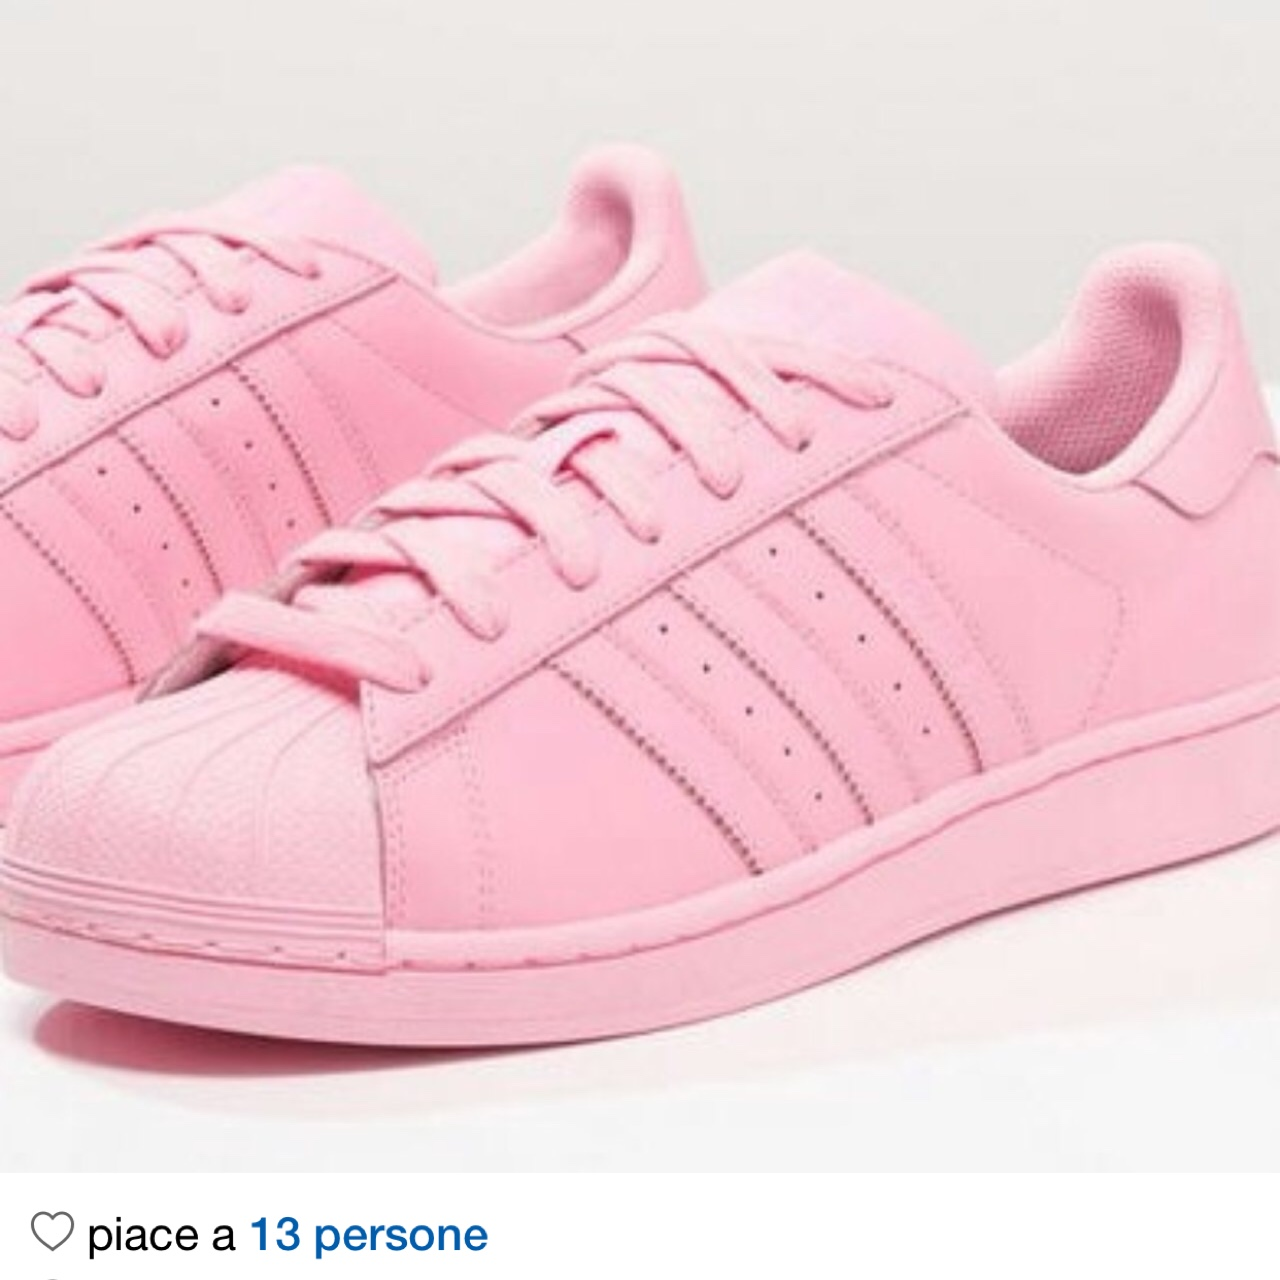 adidas supercolor rosas